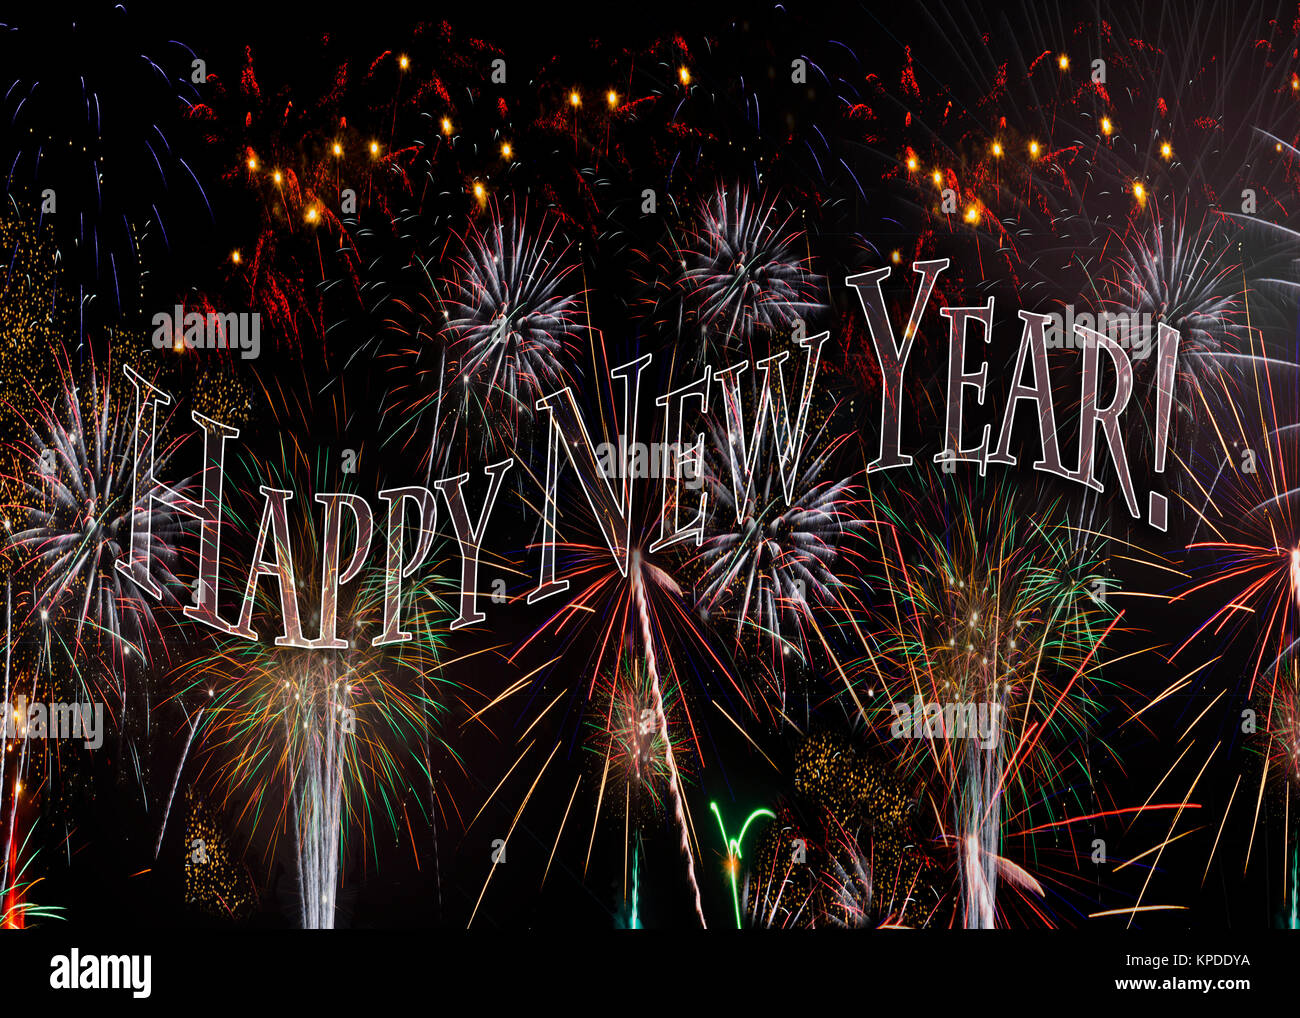 fireworks 2018 new years eve concept transparent words spell out happy new year also available with the year behind see kpddy9